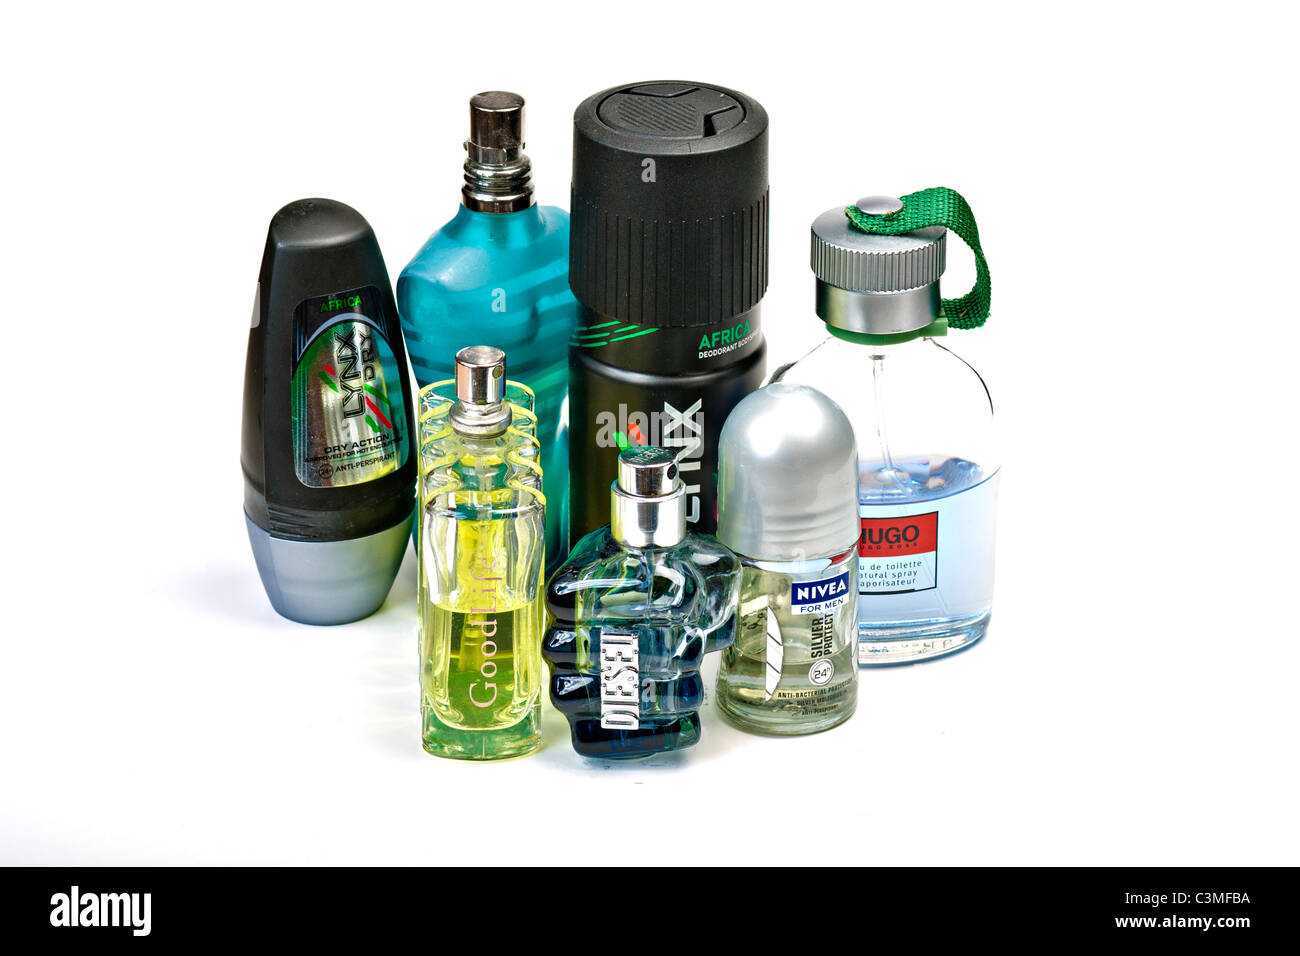 Mens toiletries on white - Stock Image